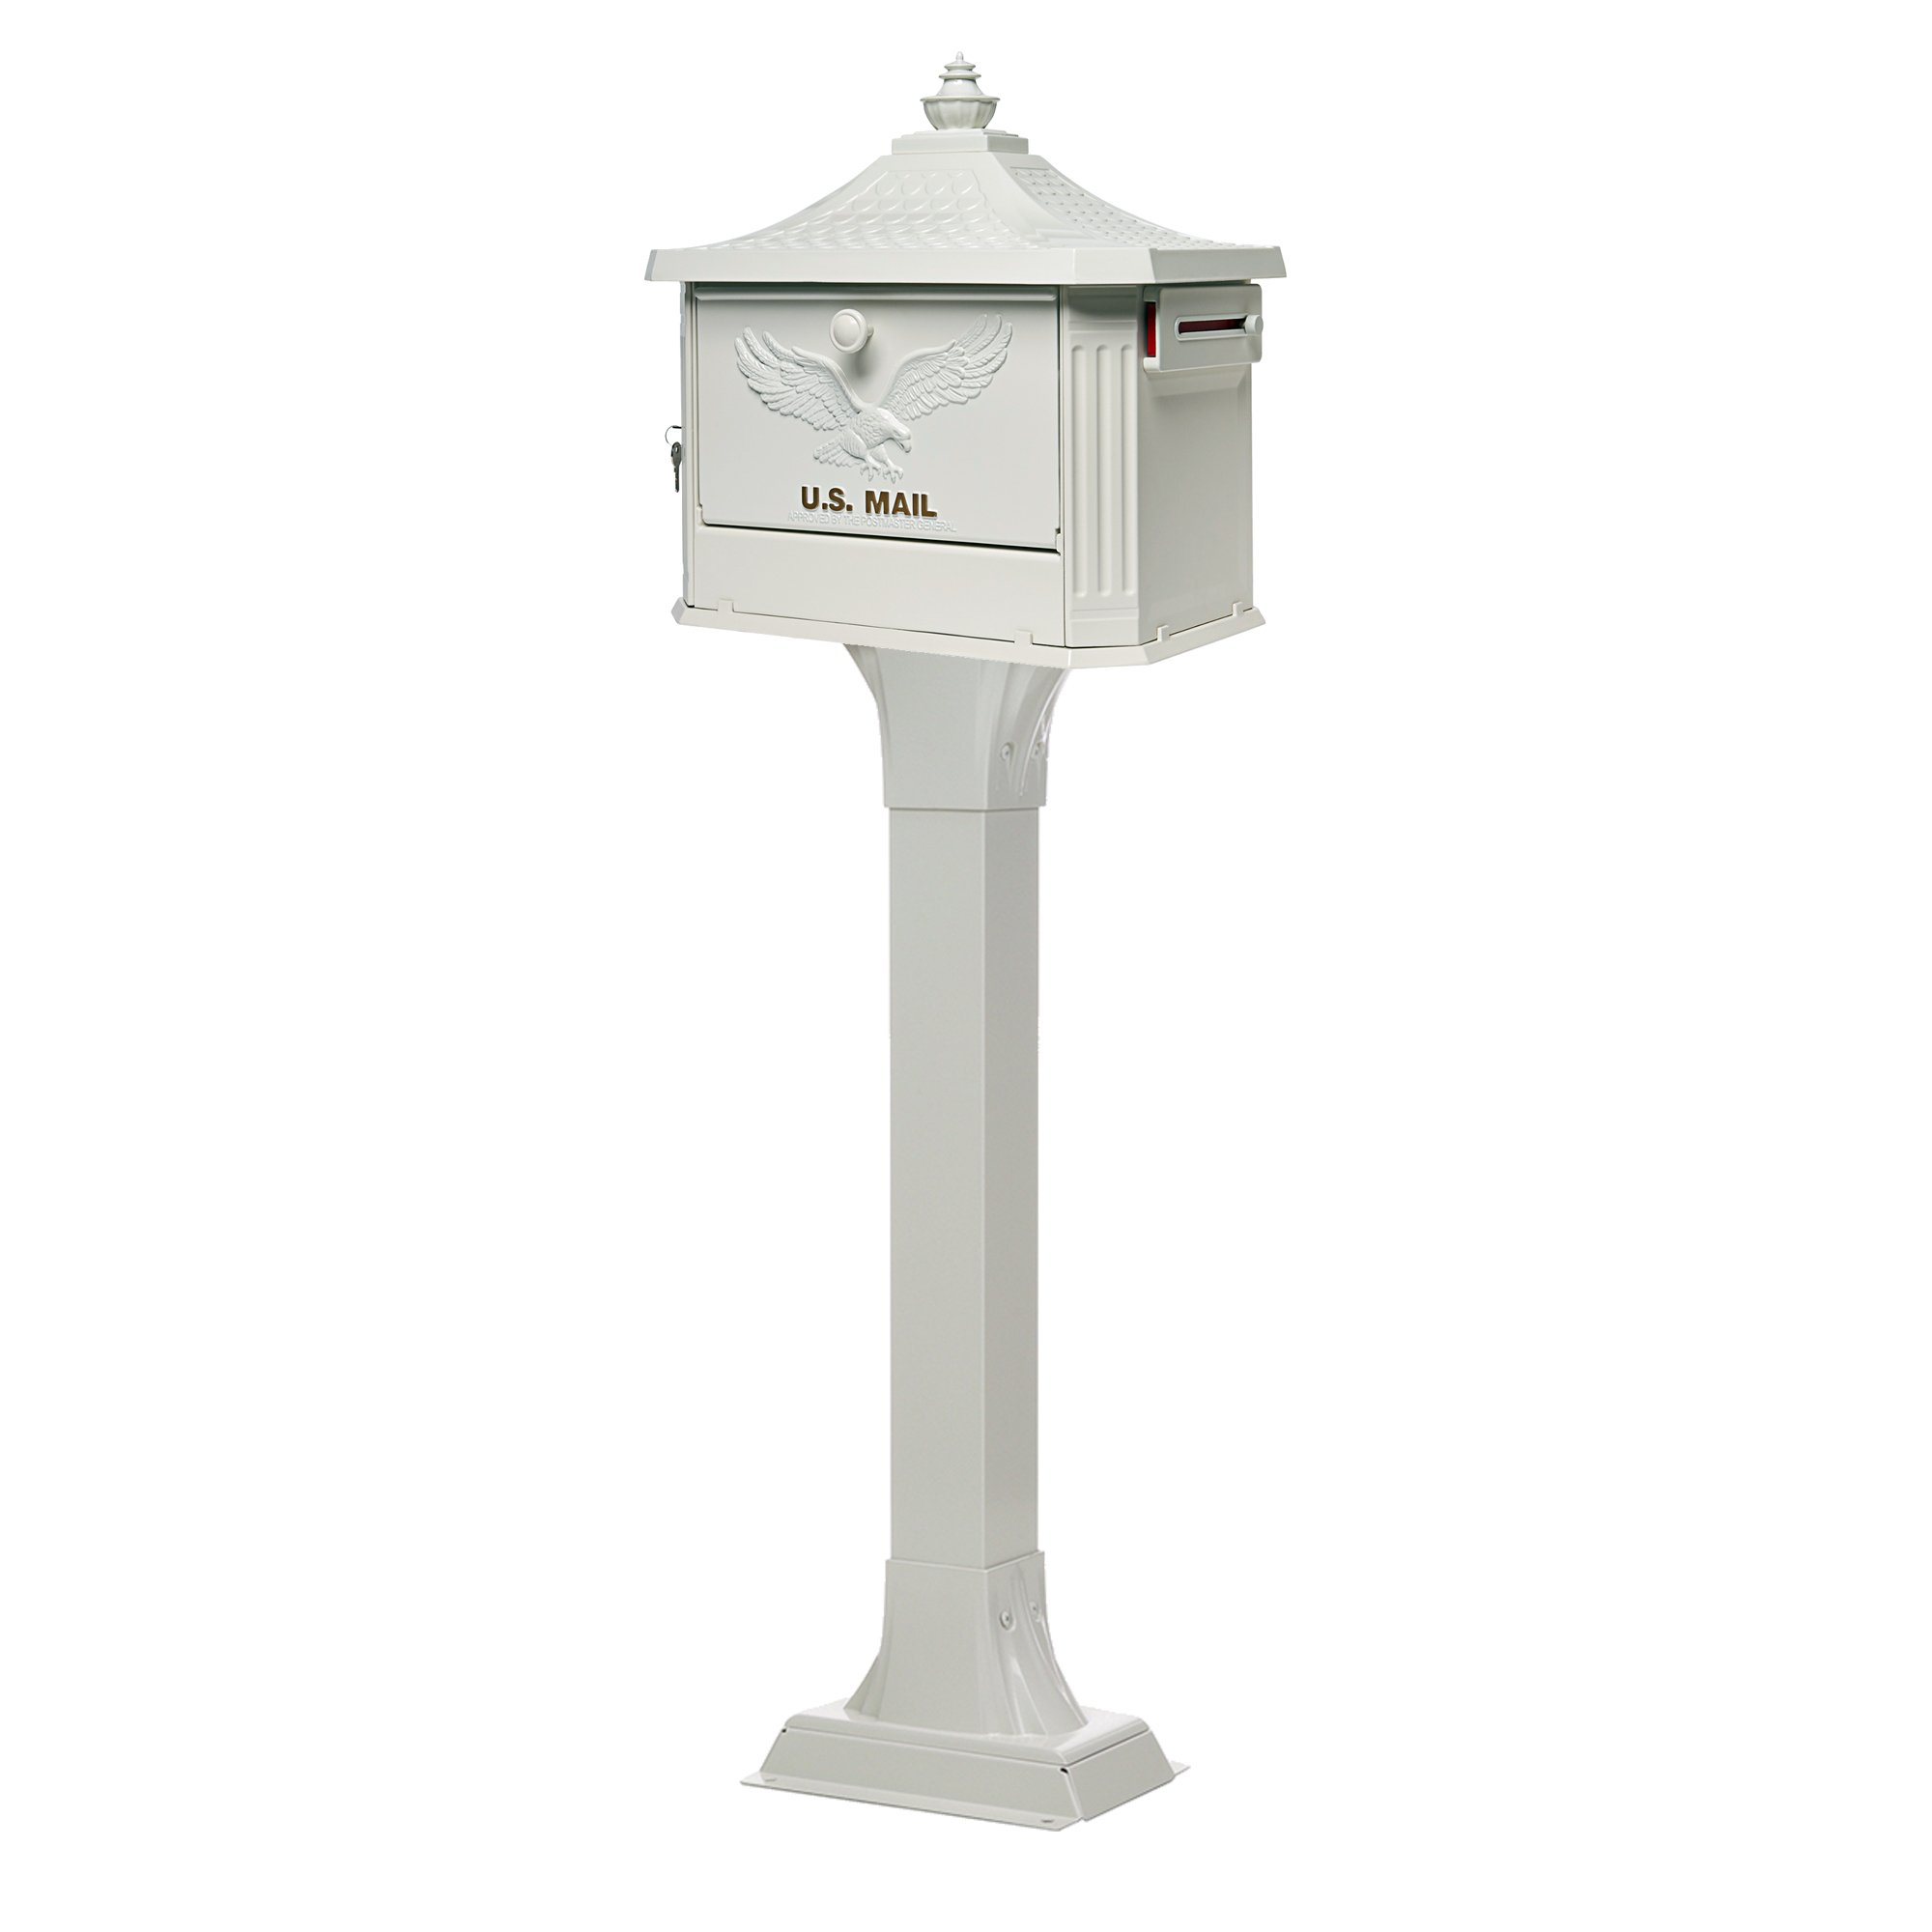 Gibraltar Mailboxes HEK00W01 Hemingway Security Mailbox, Large, White